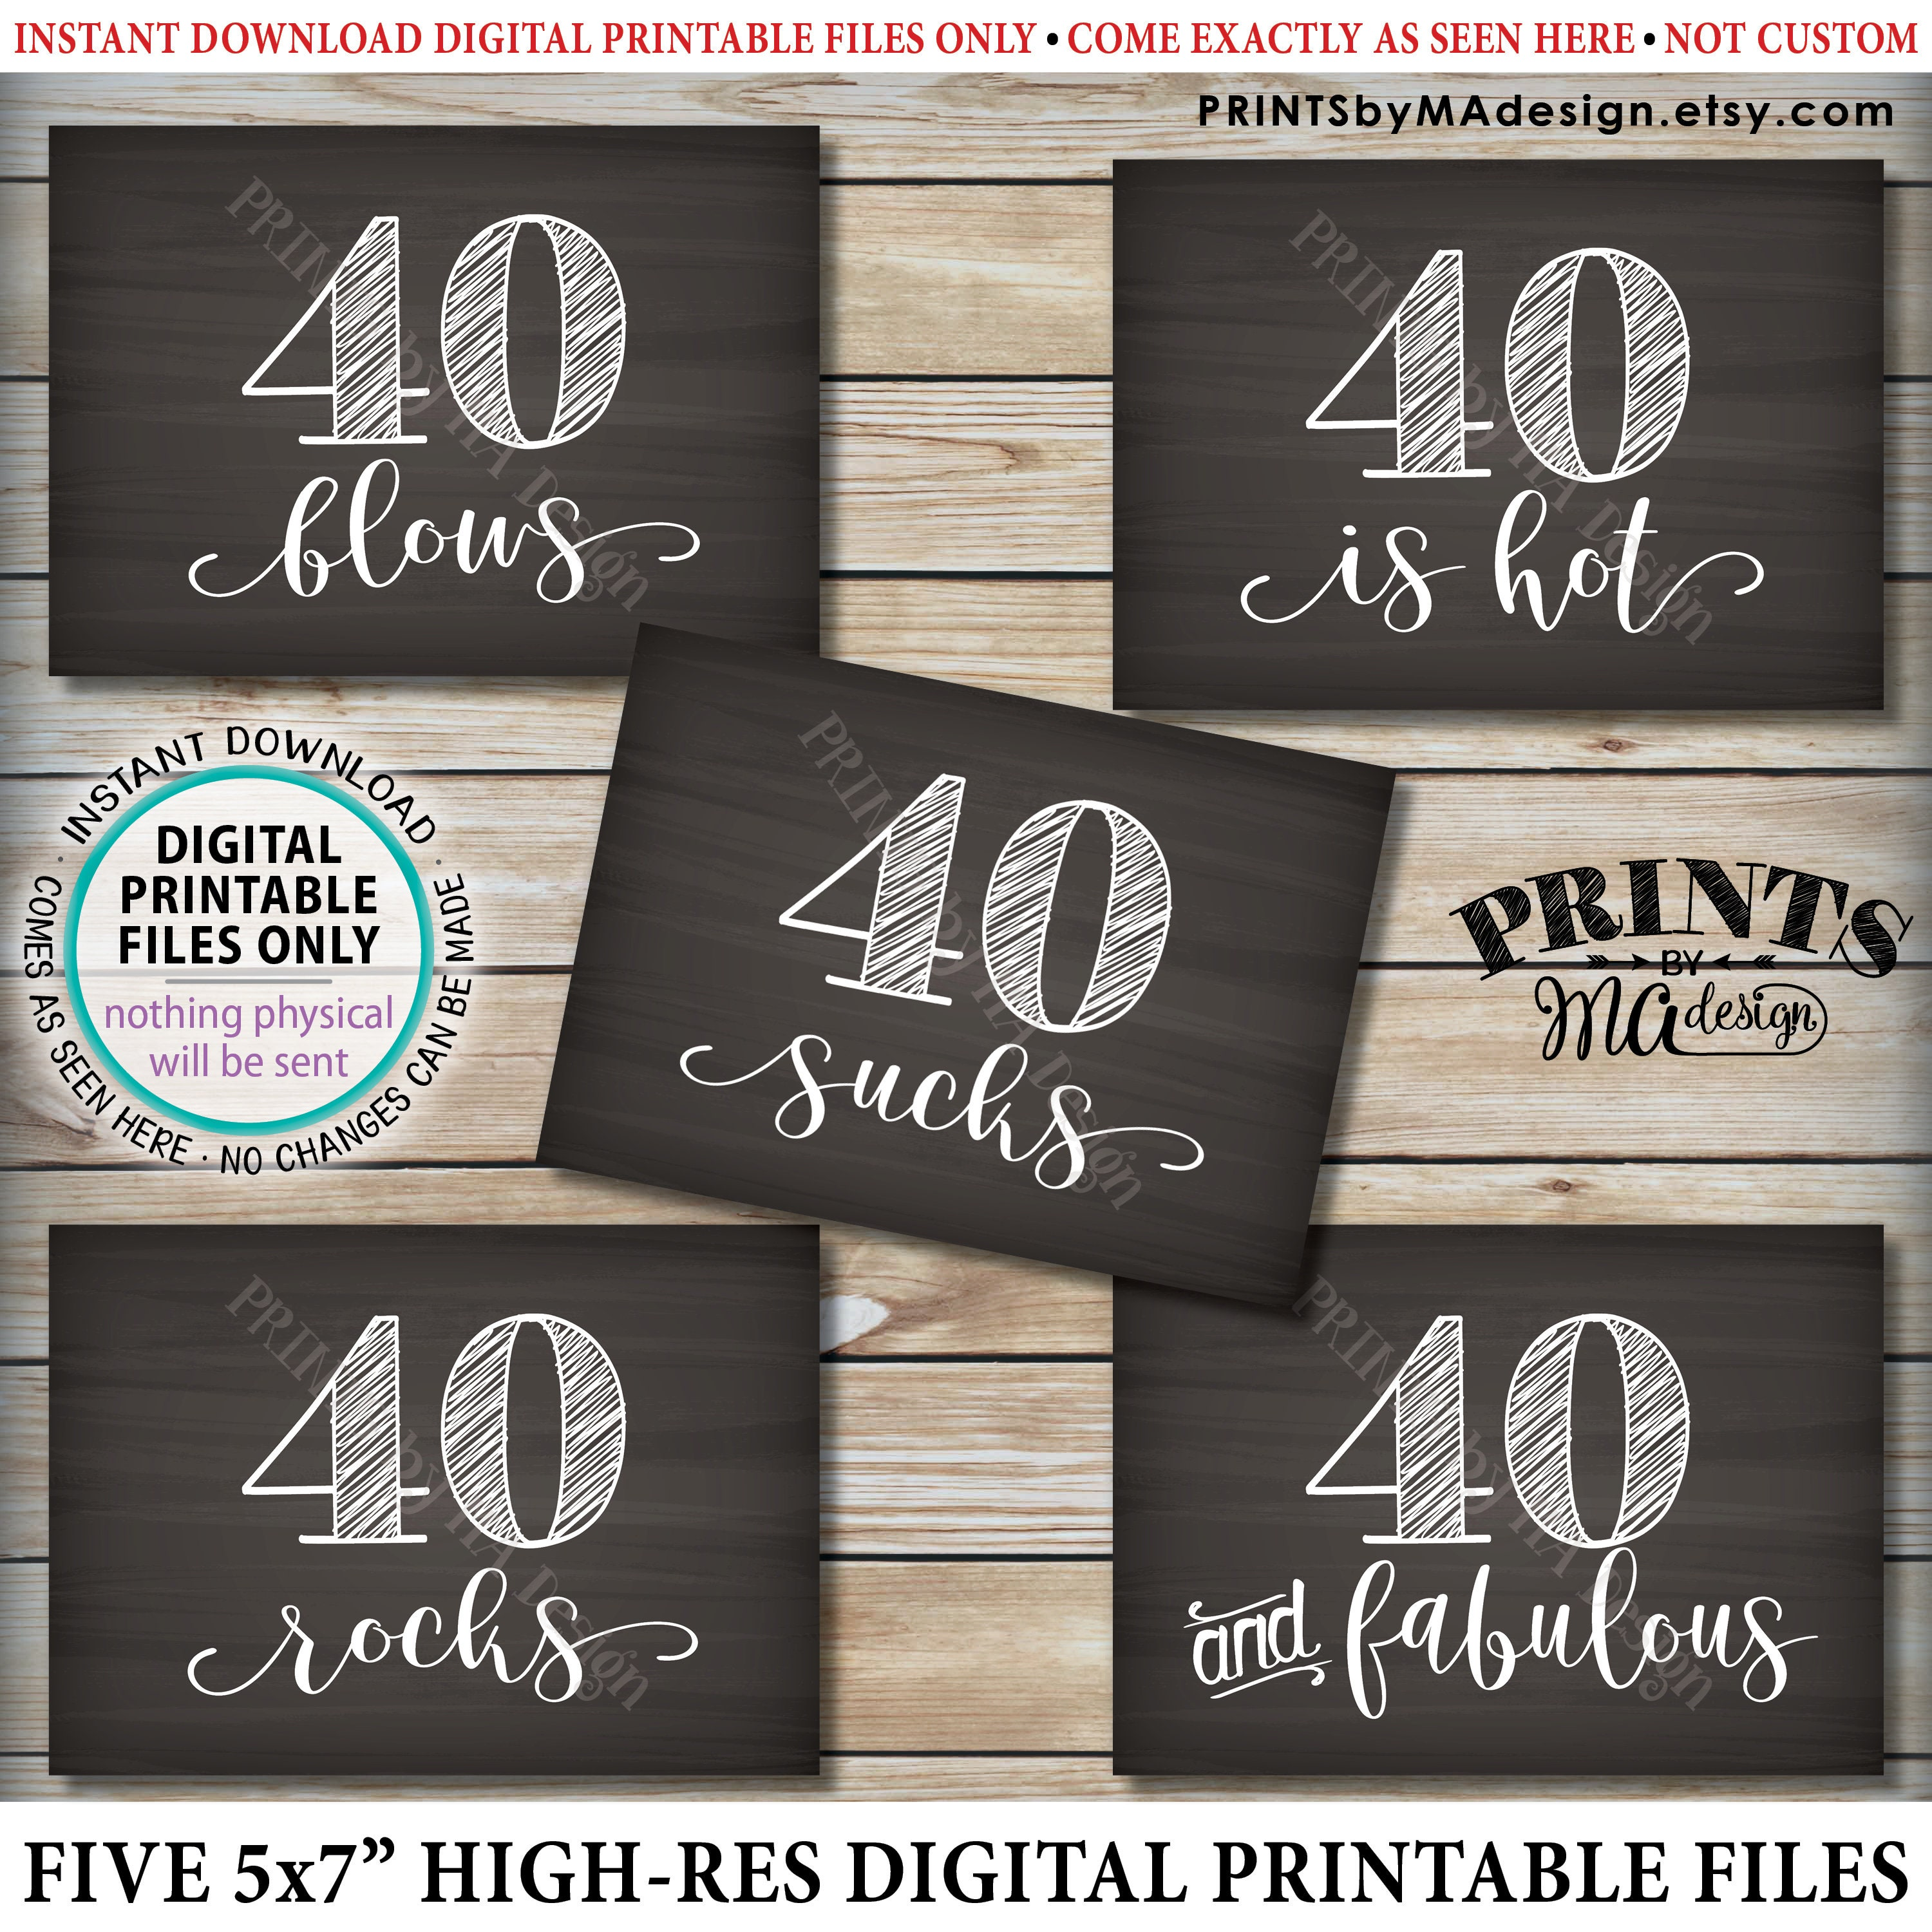 photo regarding 40th Birthday Signs Printable named 40th Birthday Signs and symptoms, 40 Sucks, Rocks, Blows, Magnificent, is Scorching